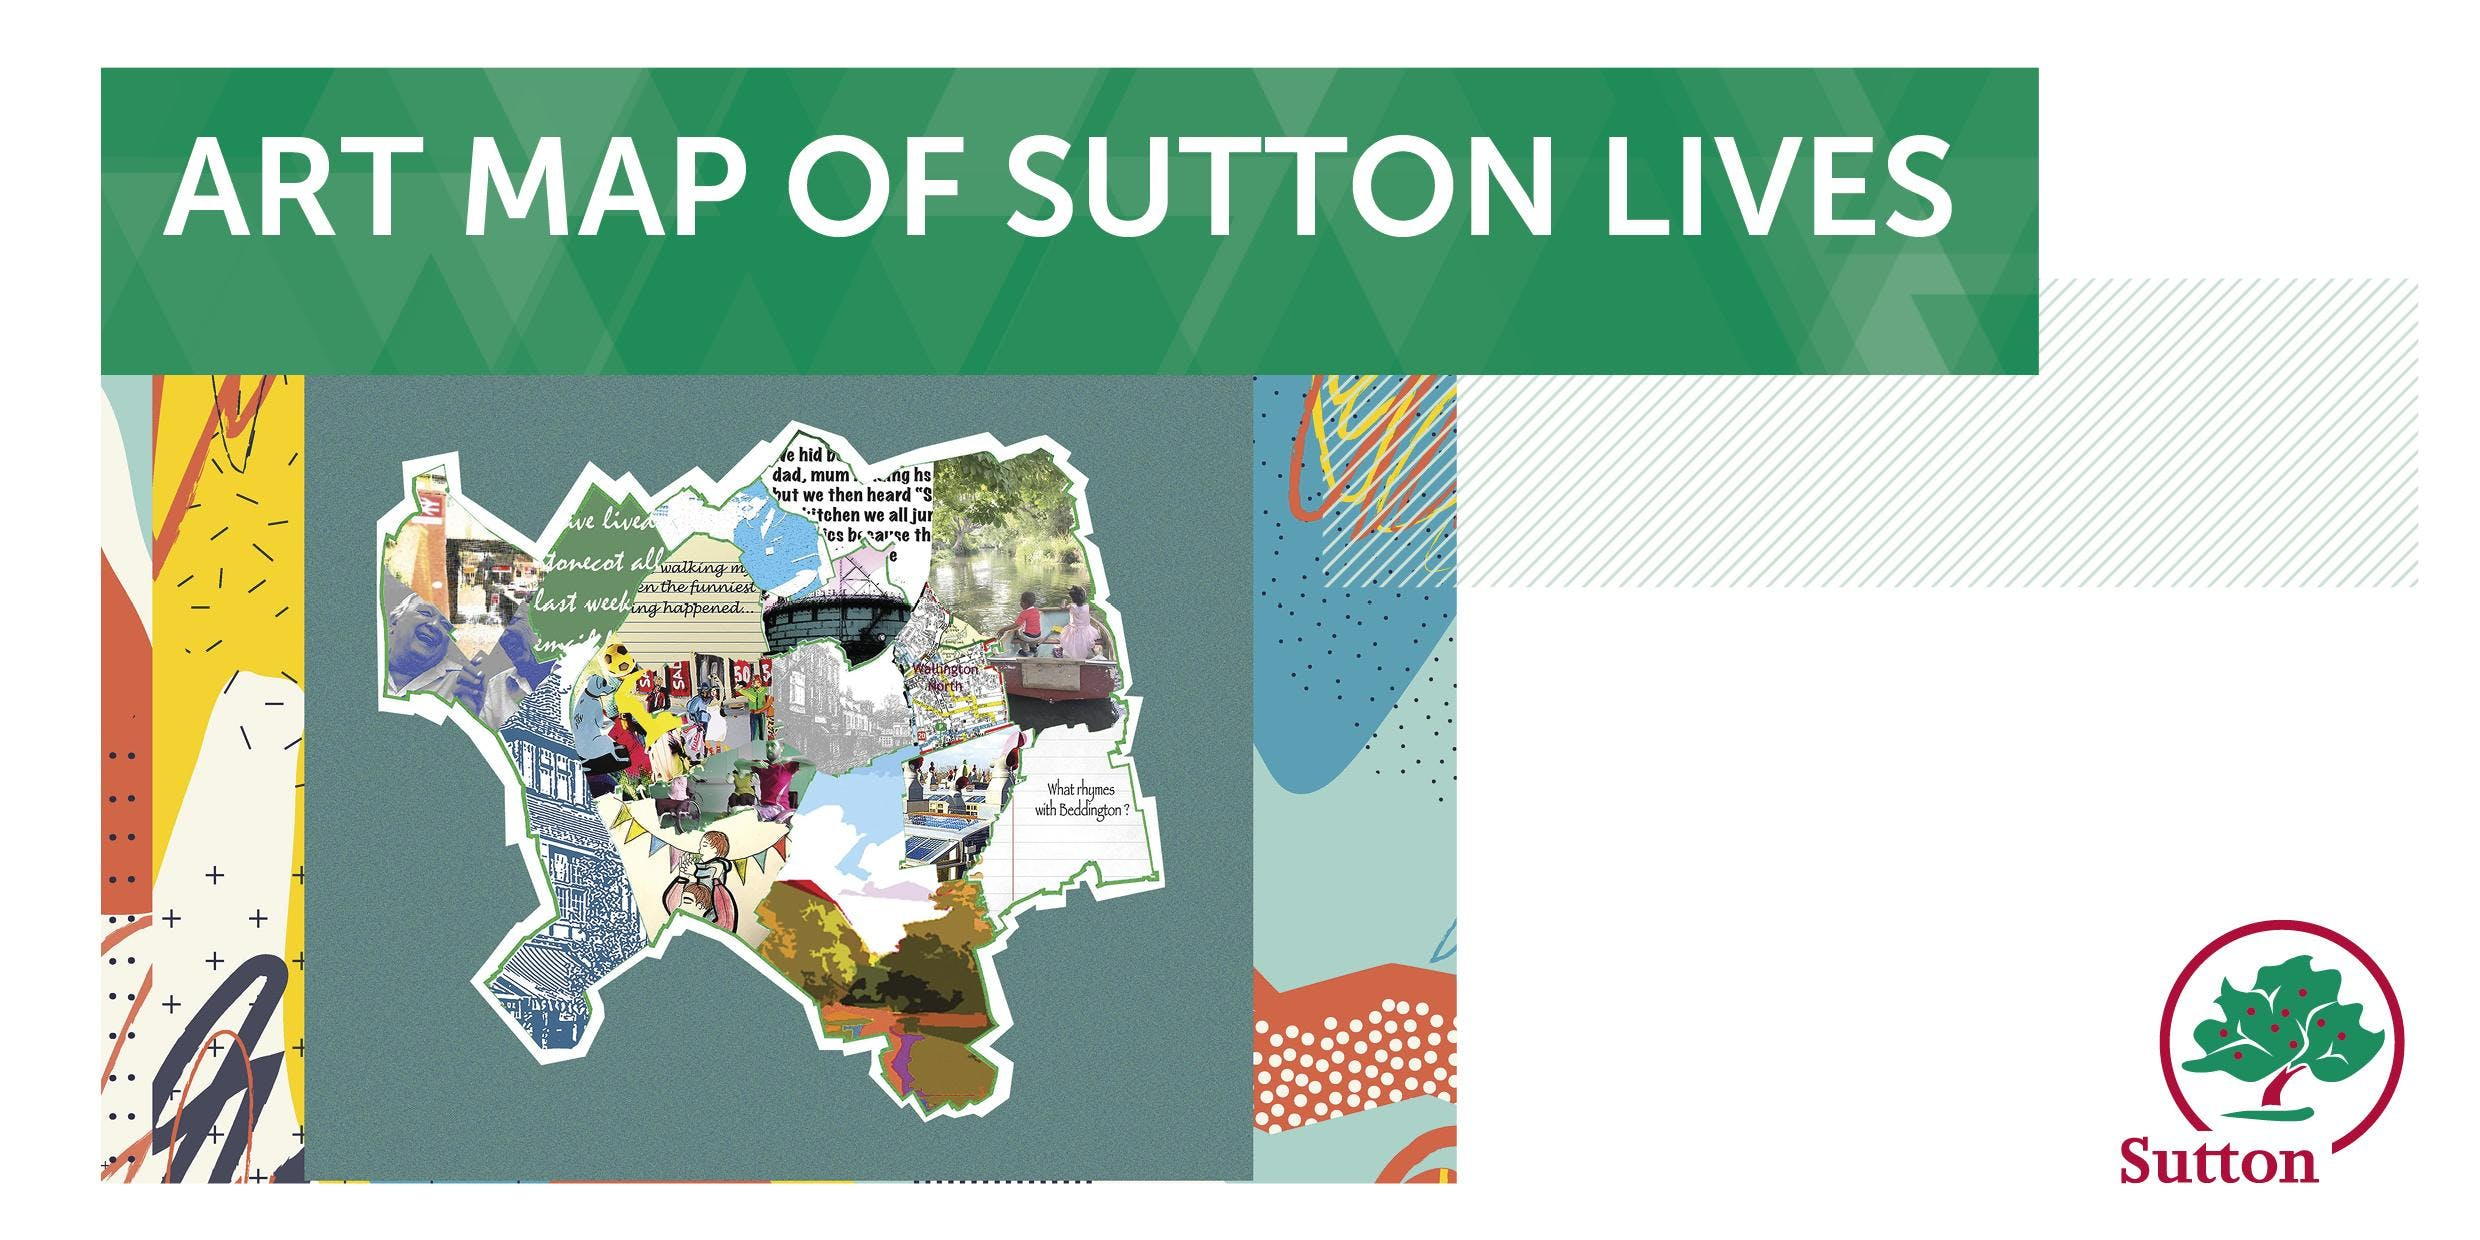 Art Map of Sutton Lives at Sutton Library- m